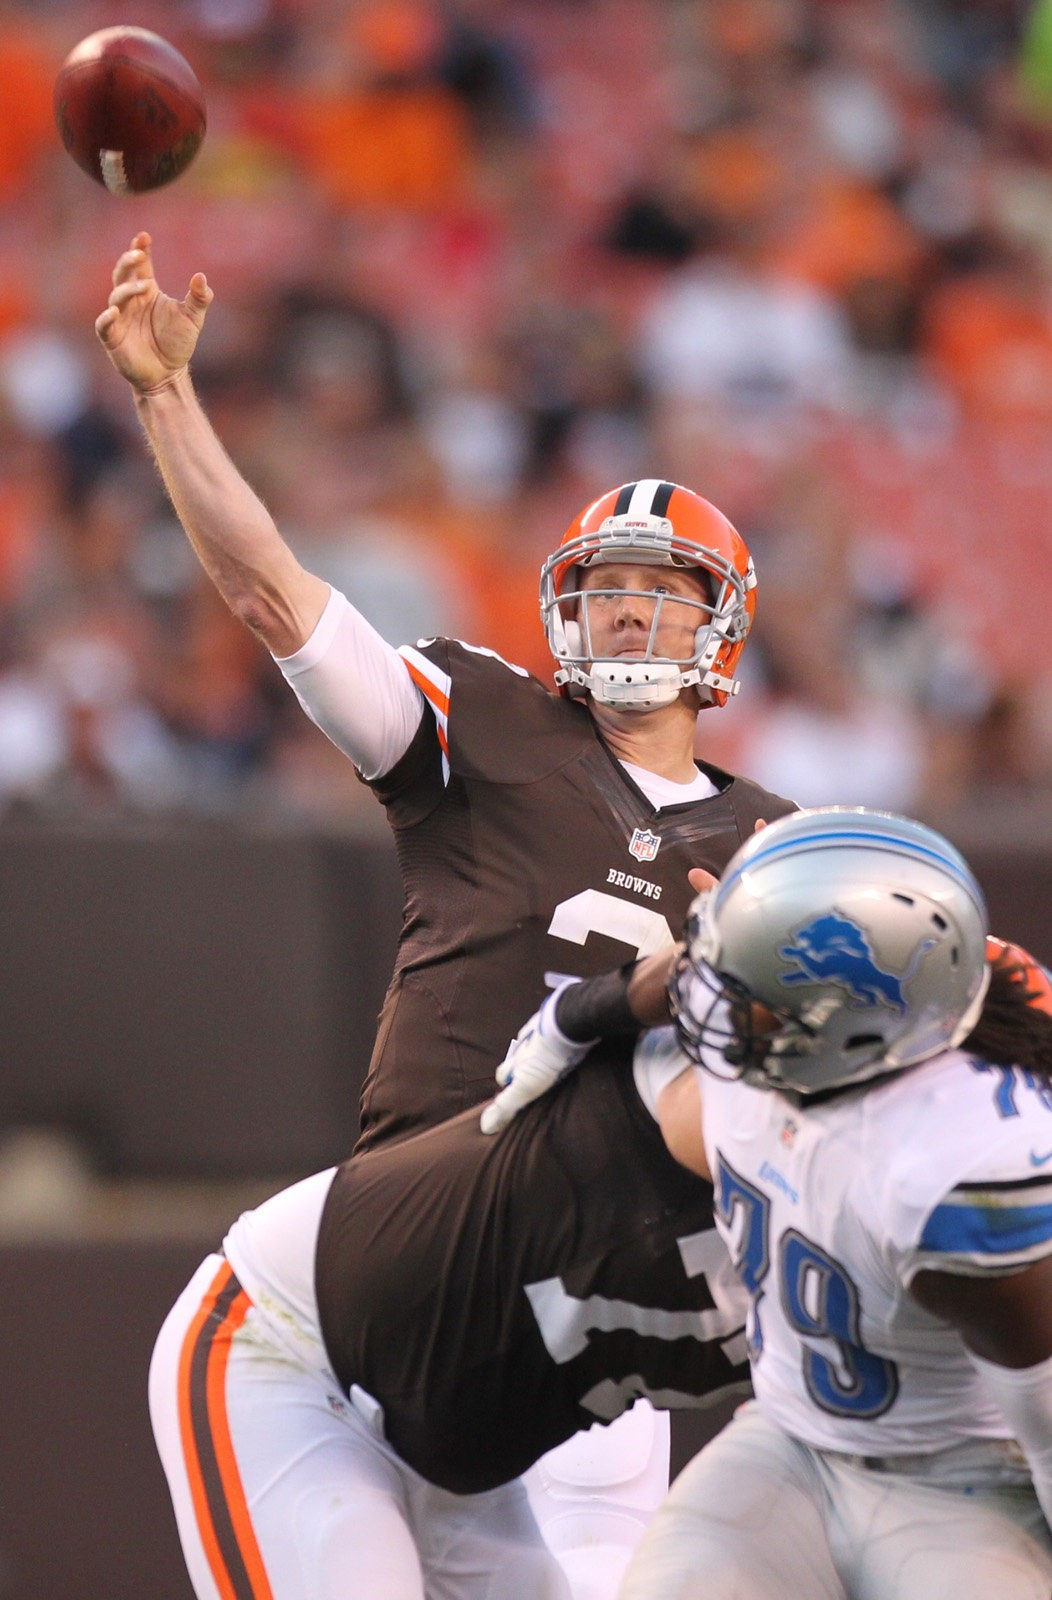 Brandon Weeden needs to show serious improvement this season if he plans on being the franchise quarterback.